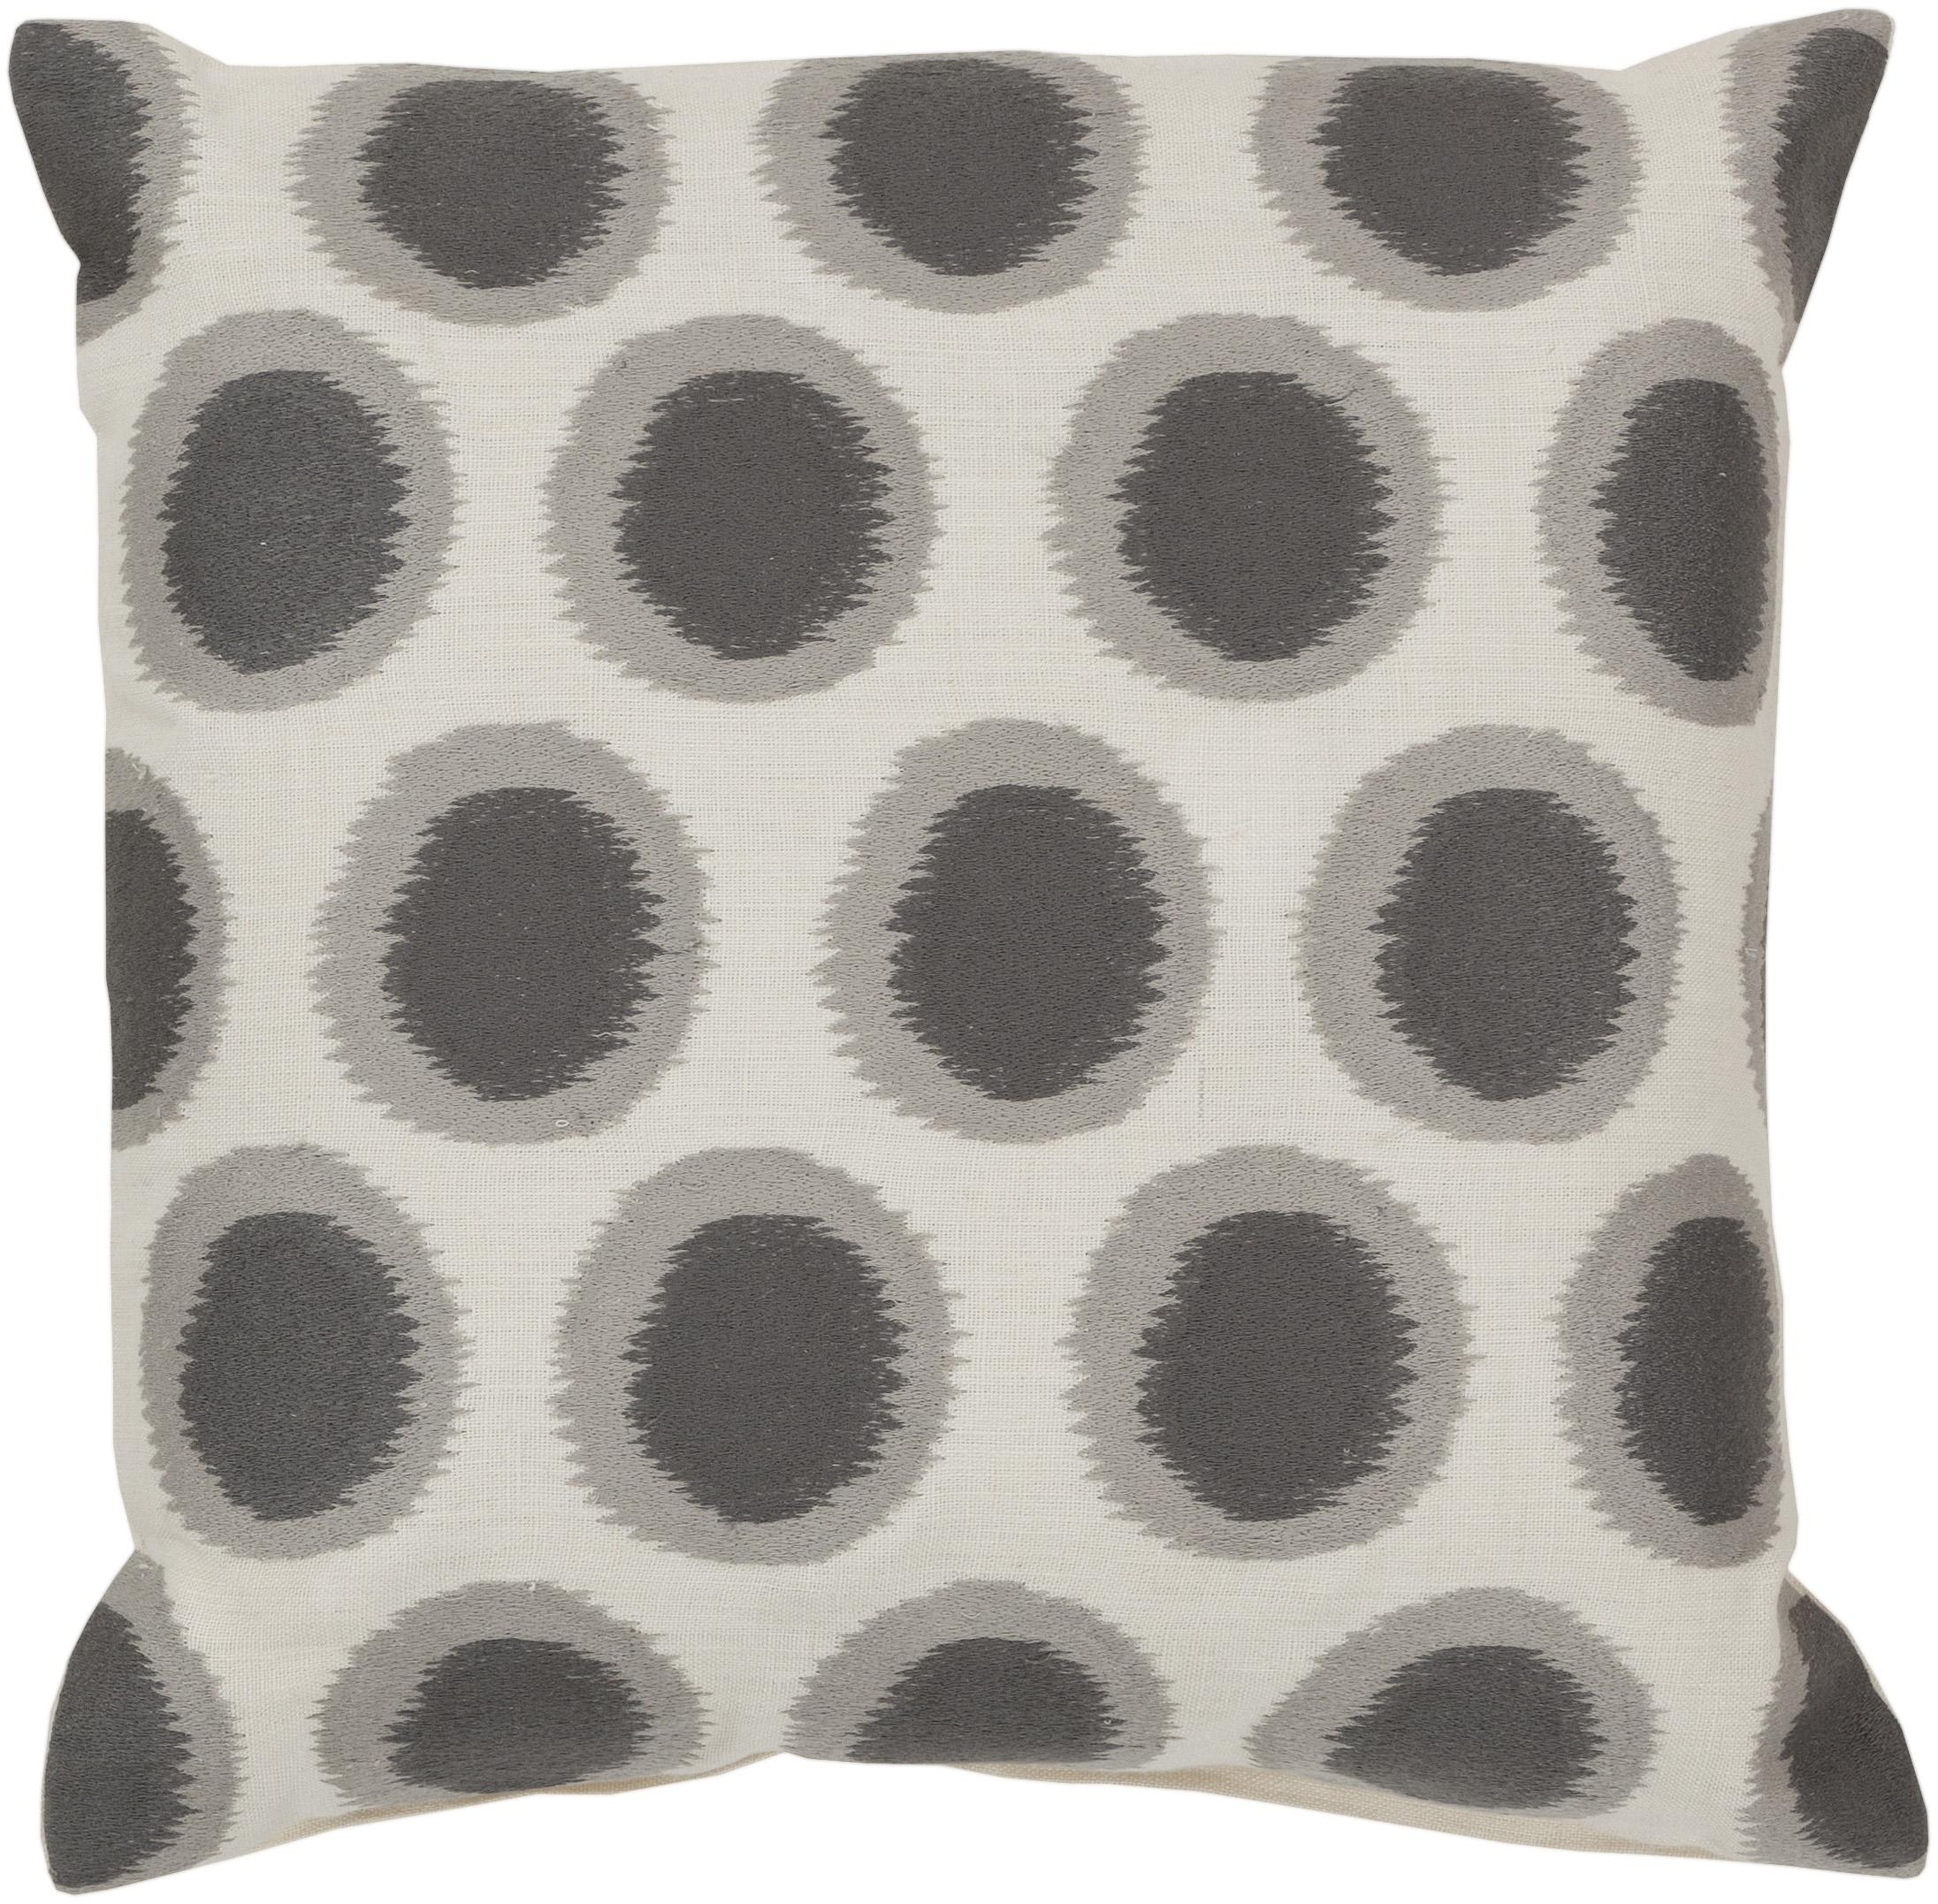 "Surya Rugs Pillows 18"" x 18"" Pillow - Item Number: AR090-1818P"